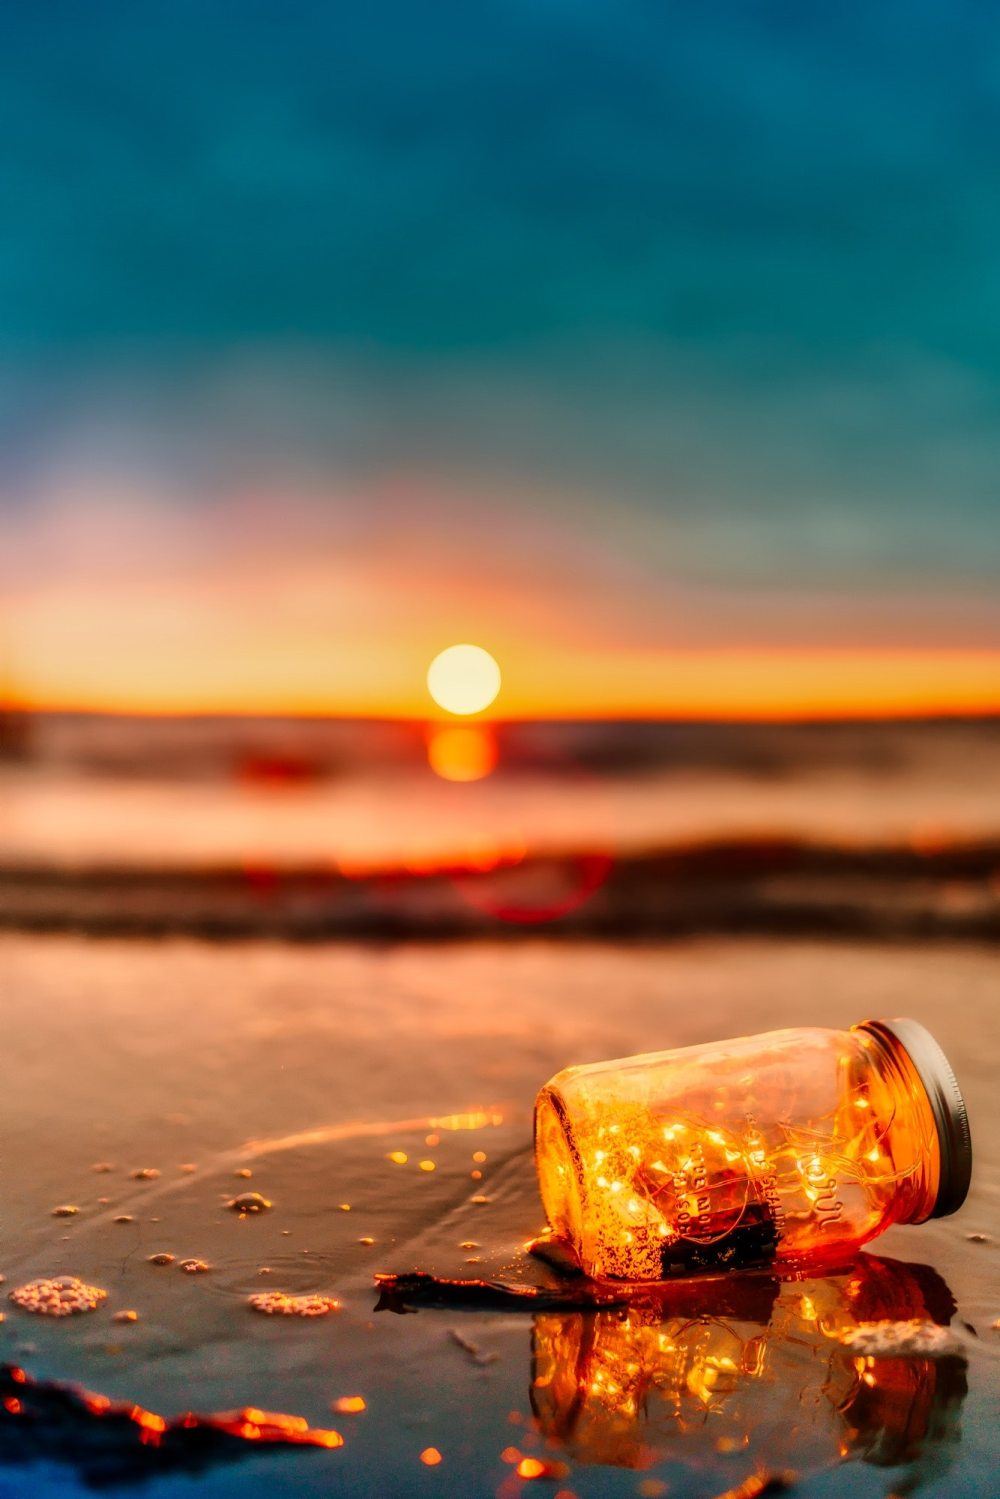 Sunset with a bottle and lights